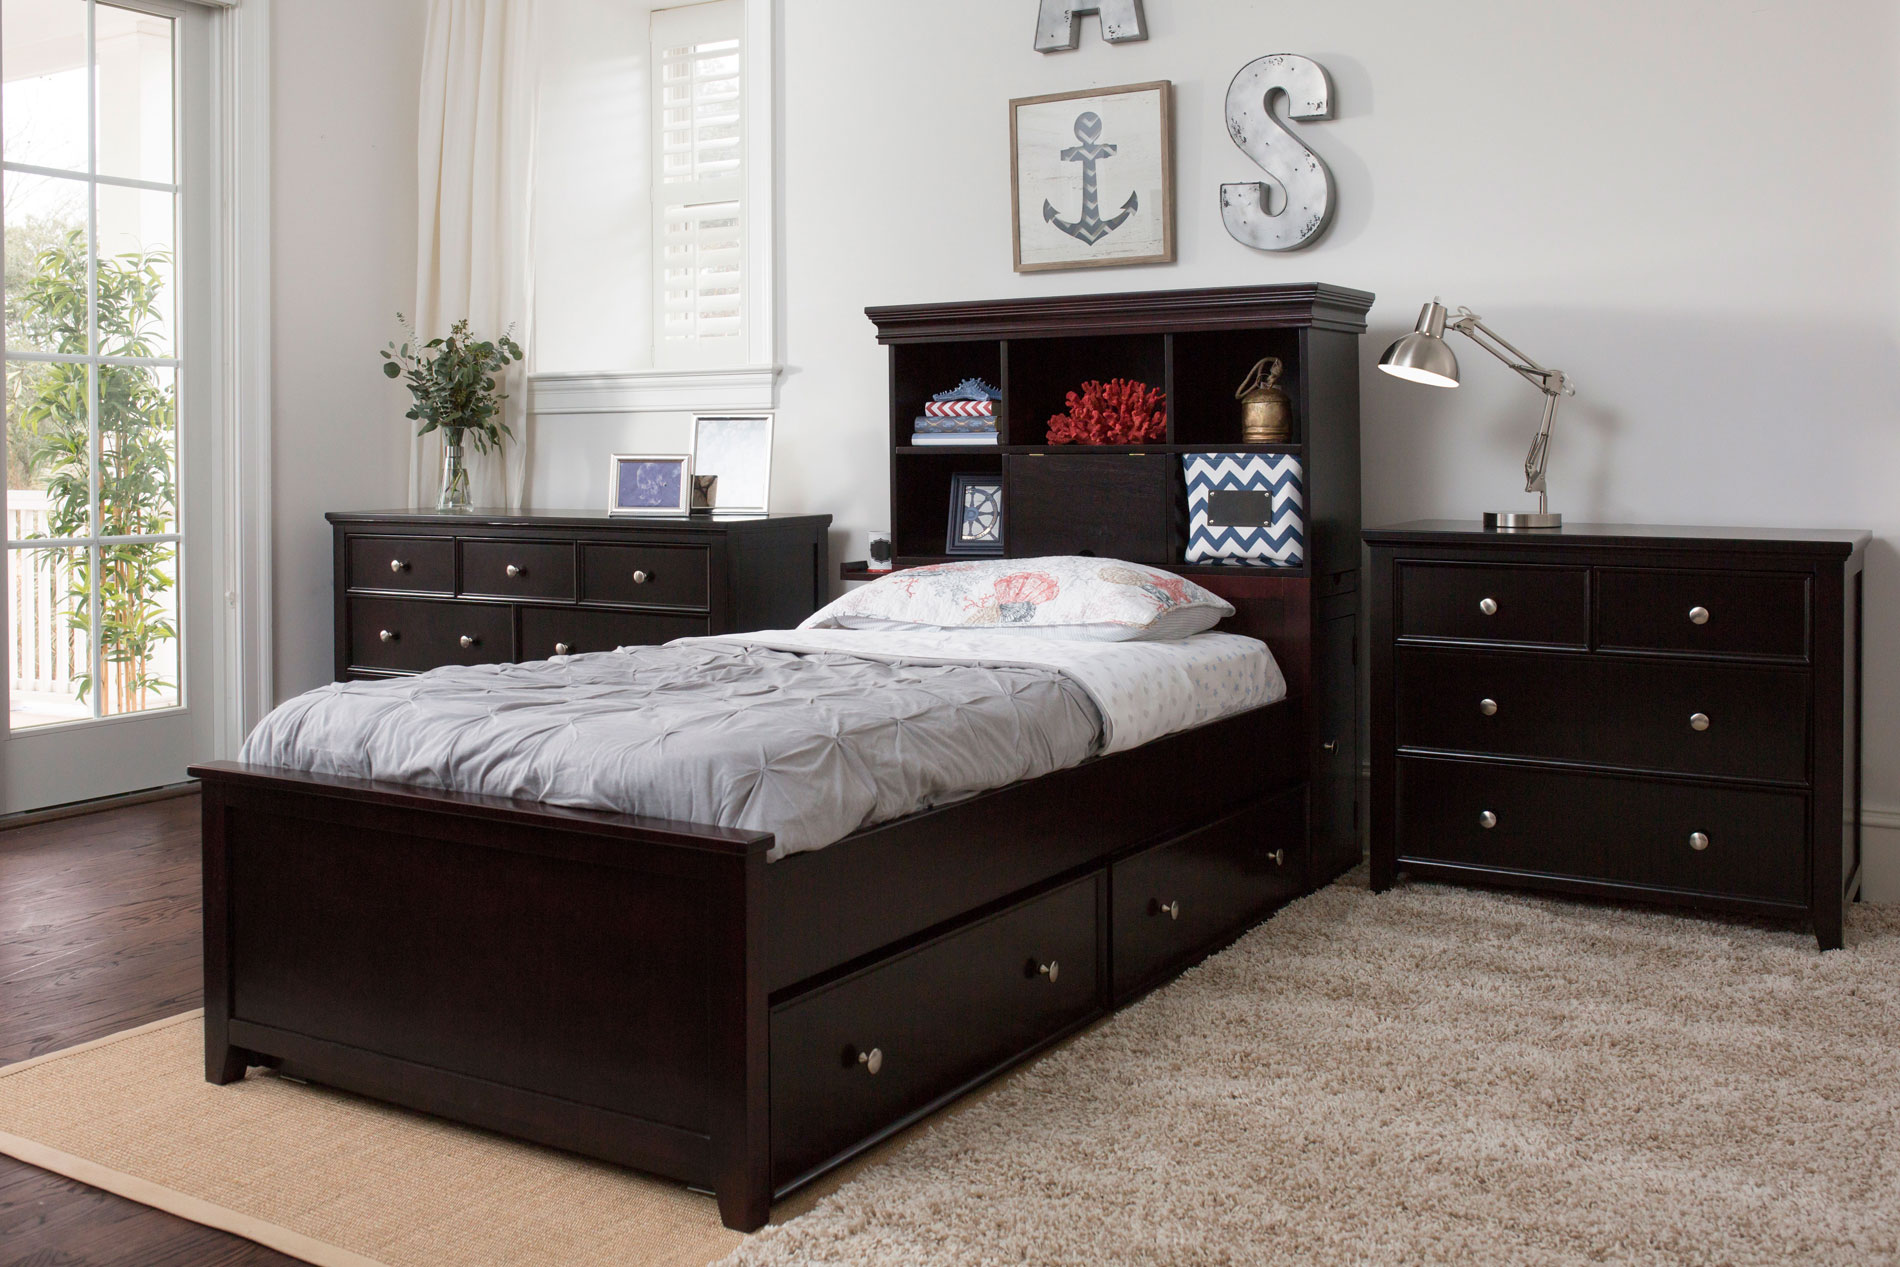 High Quality Hardwood Bedroom Furniture for Teens  Youth